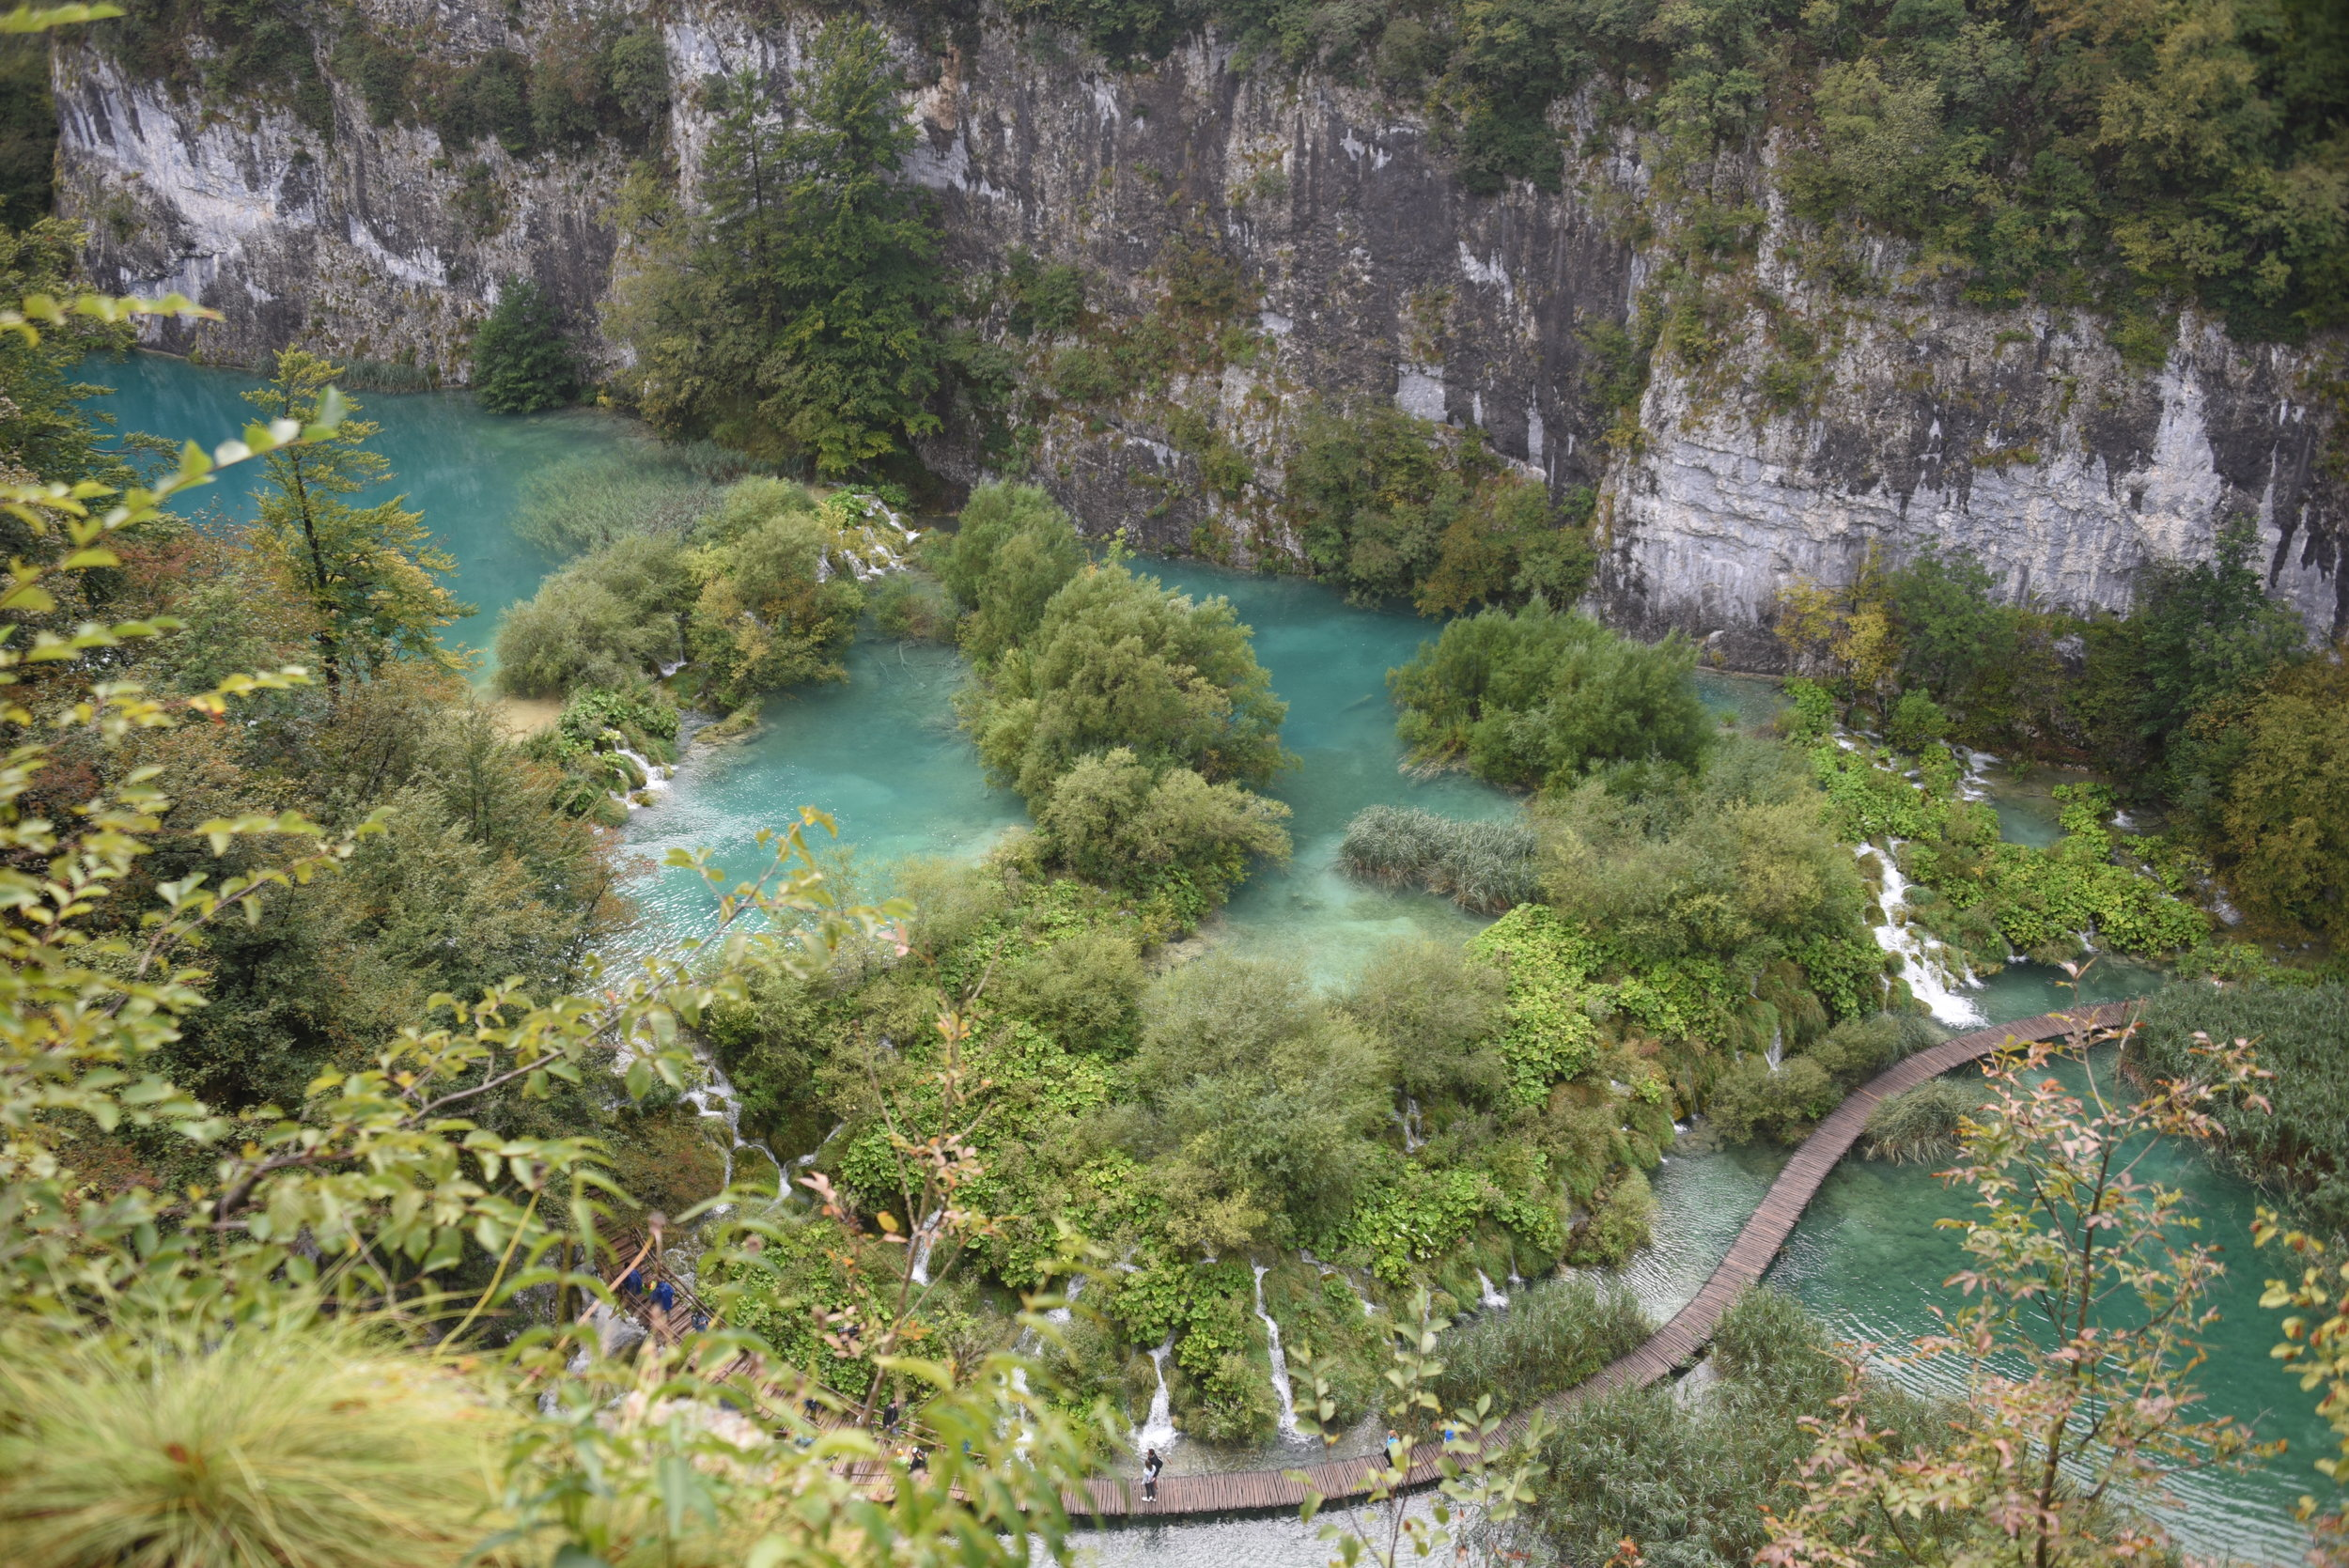 Plitvice Lakes National Park - from the cliffs above.